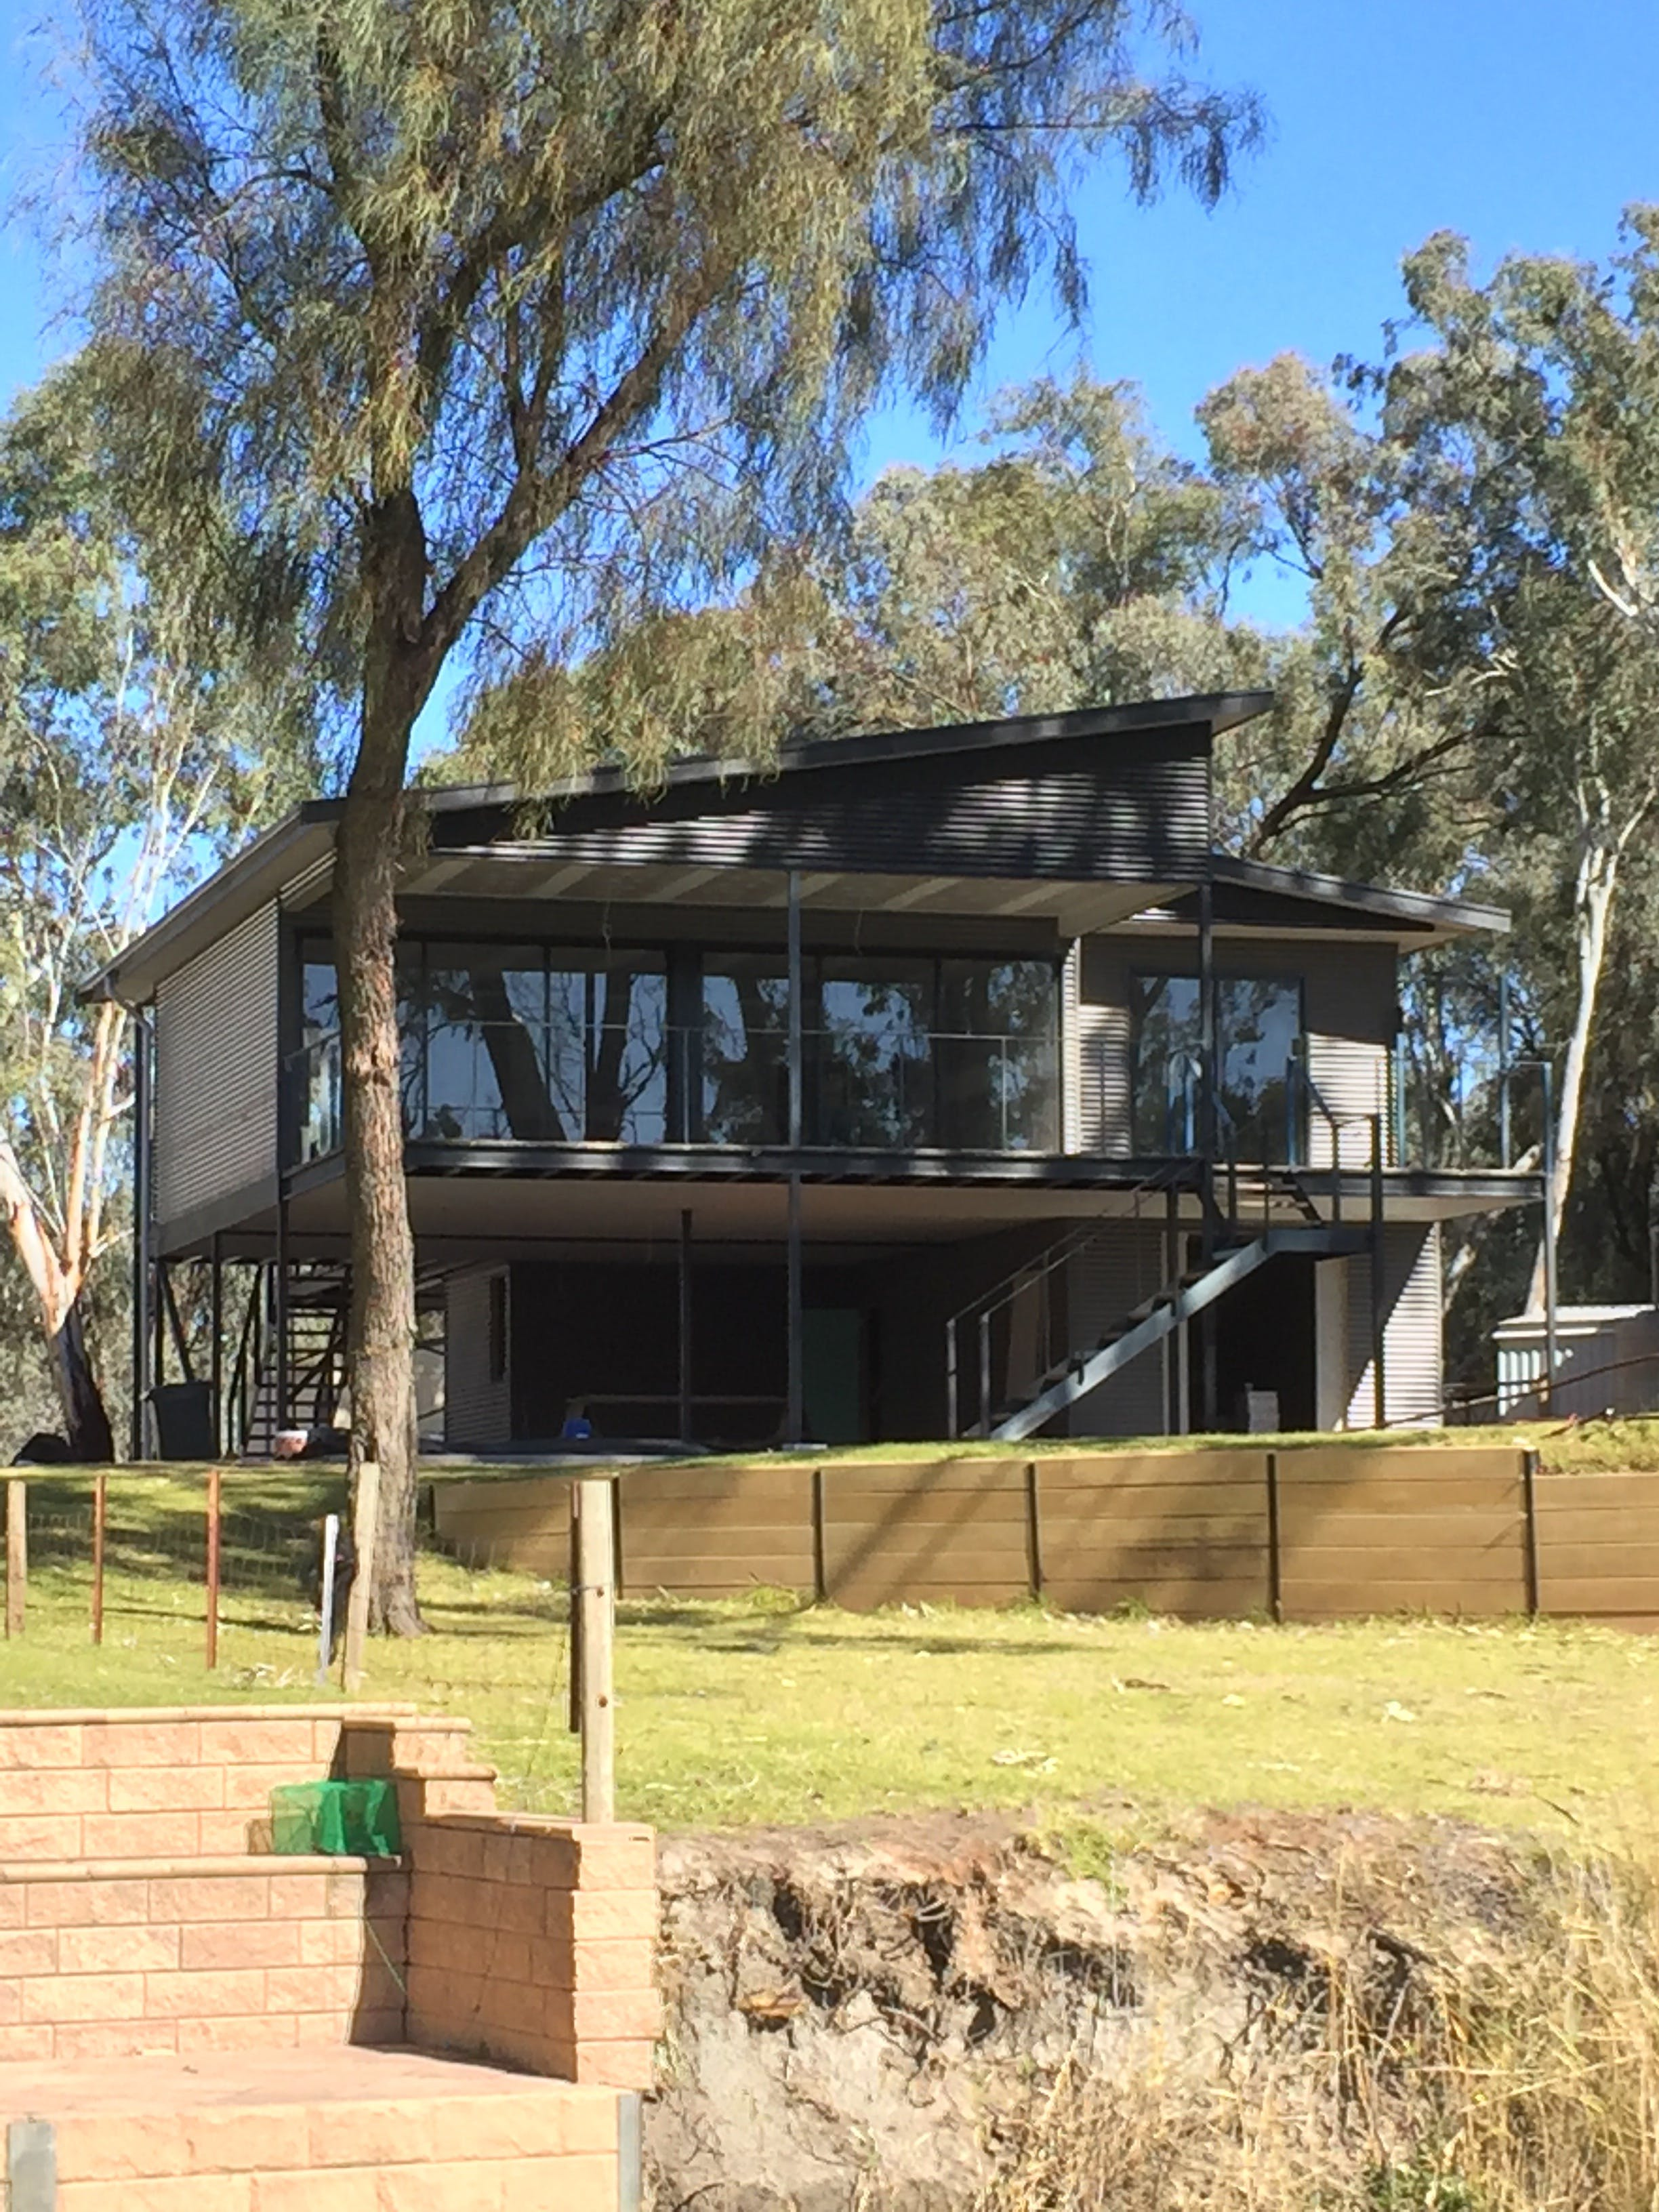 36 Brenda Park Via Morgan -River Shack Rentals - South Australia Travel